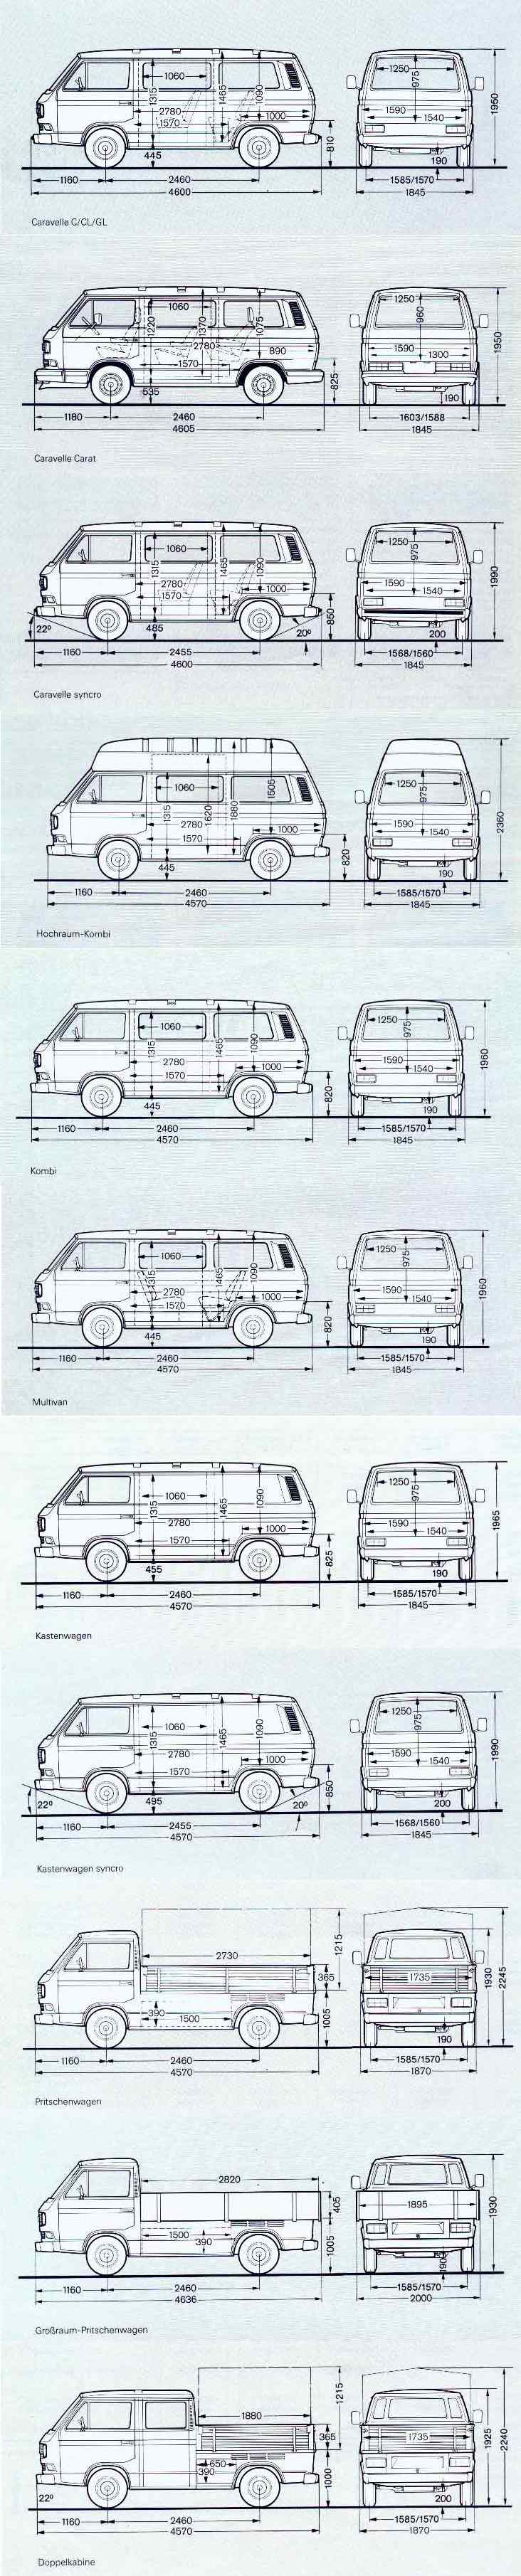 vehicle_dimensions